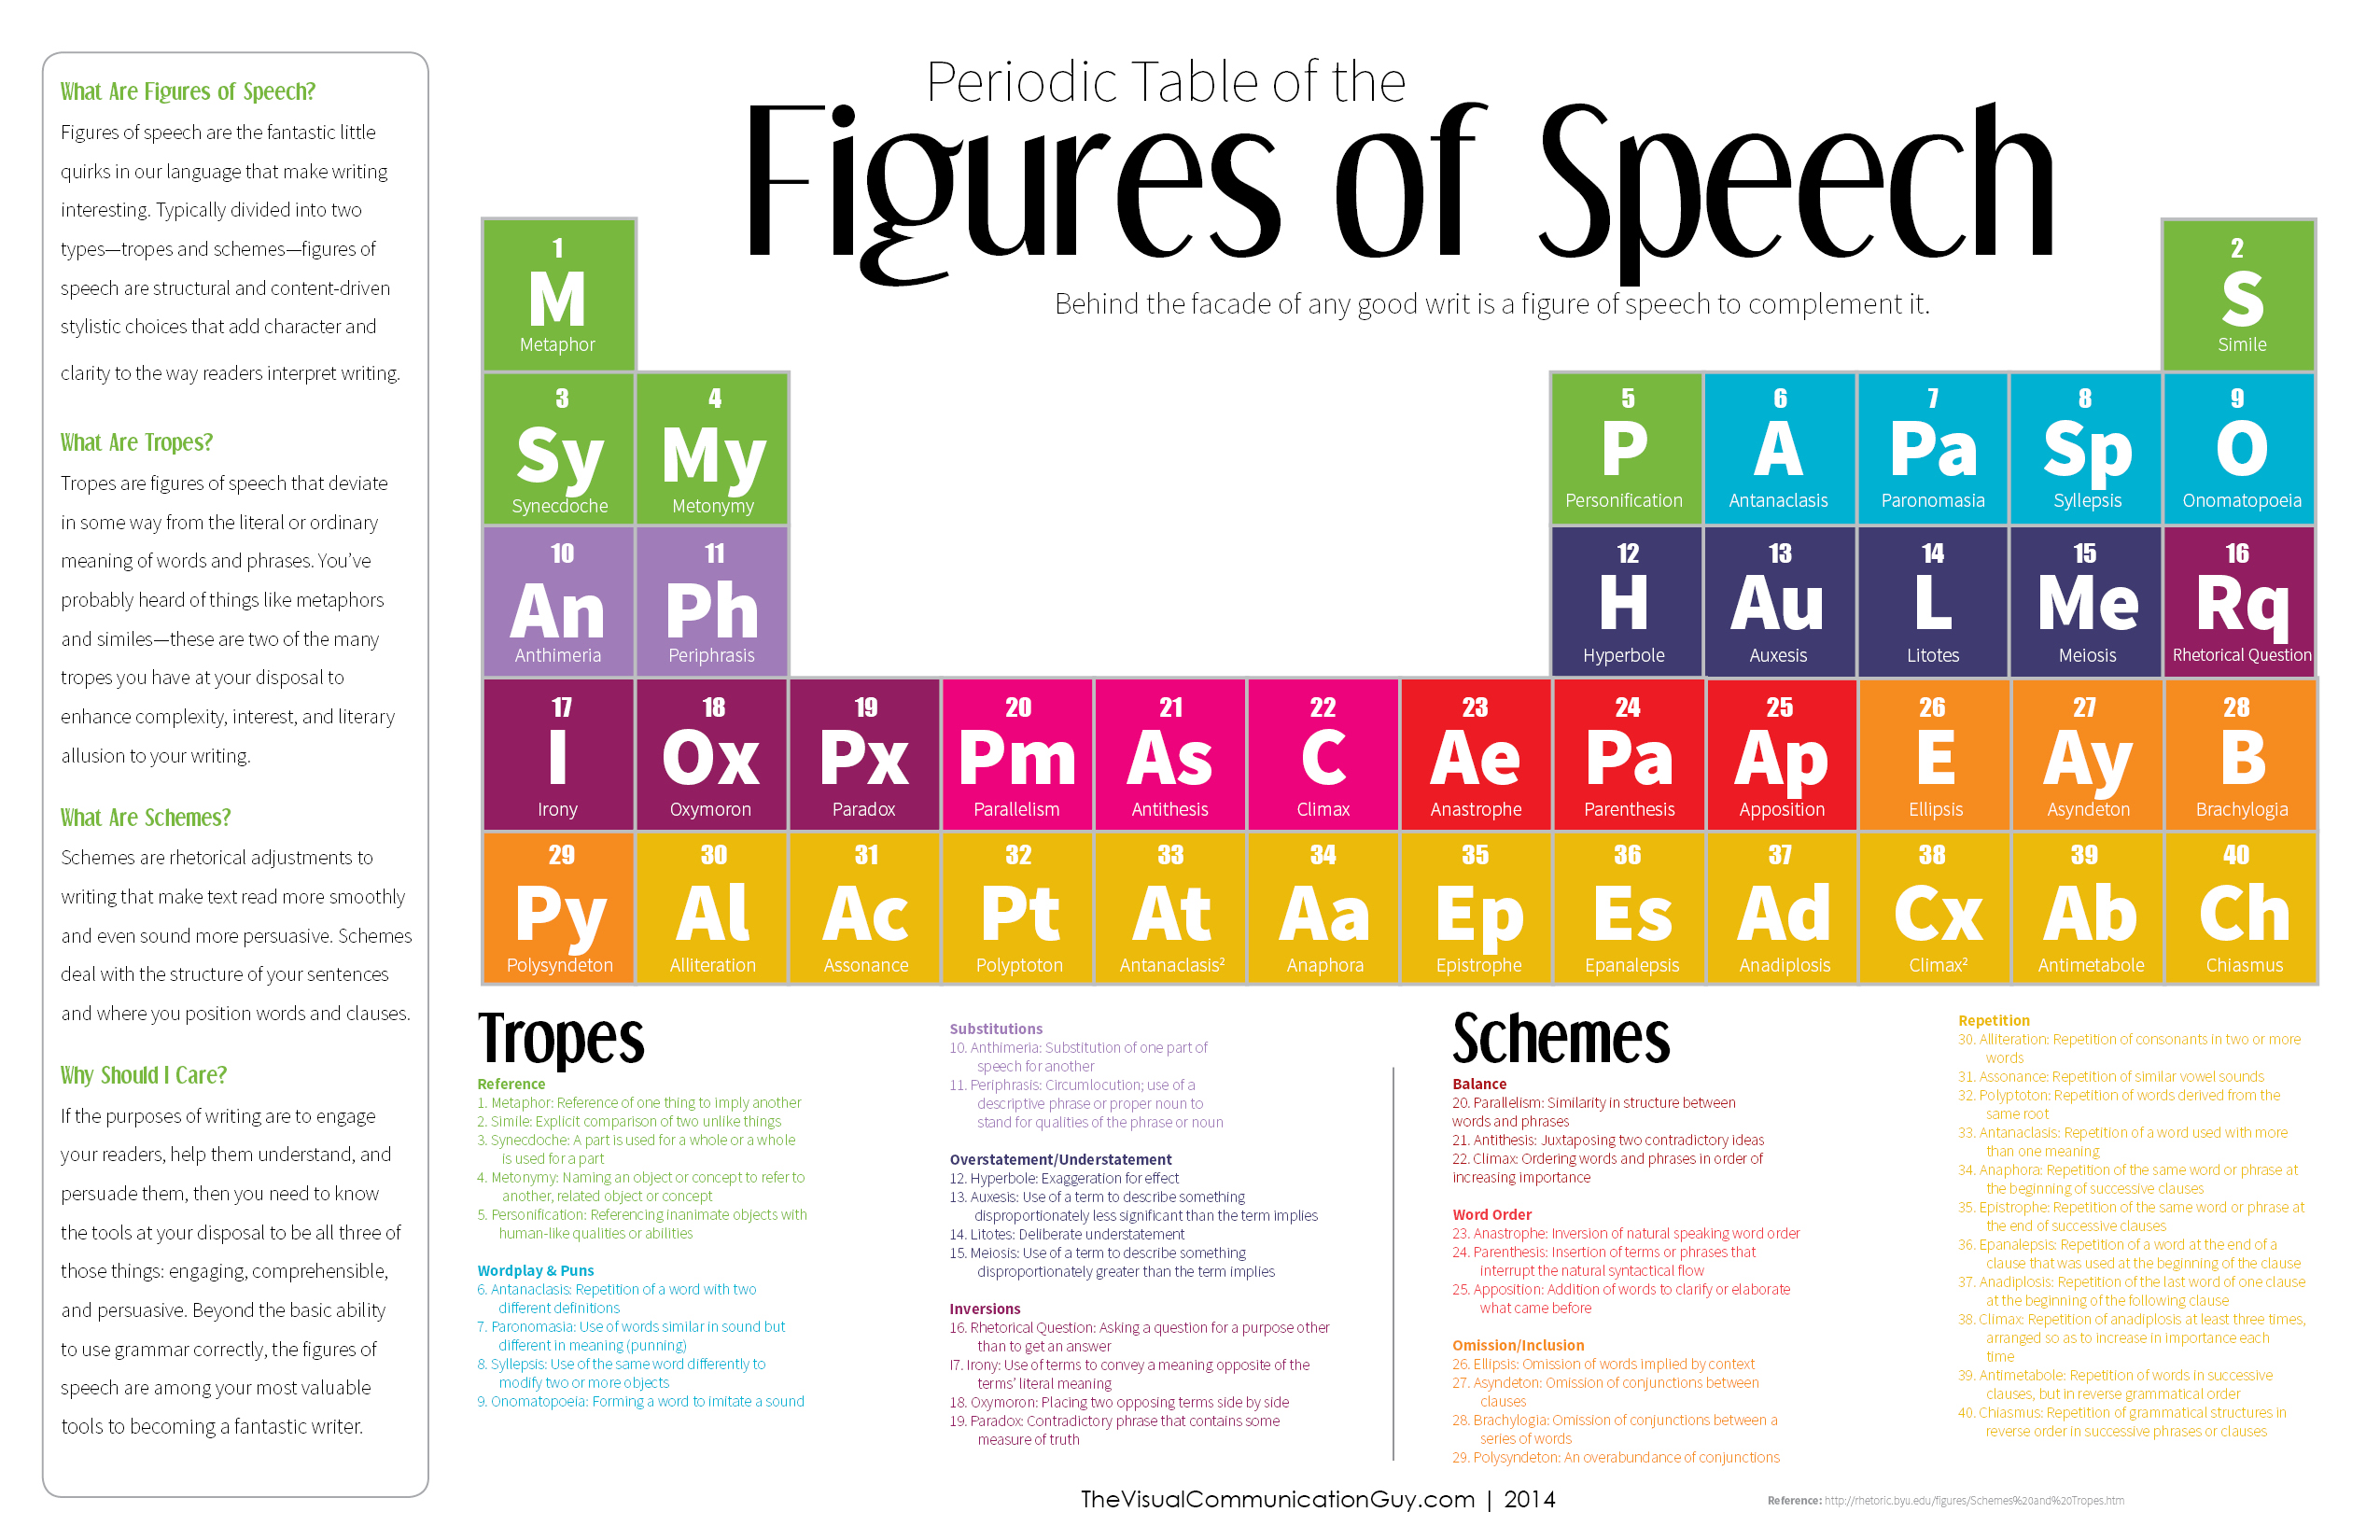 The Periodic Table Of The Figures Of Speech 40 Ways To Improve Your Writing The Visual